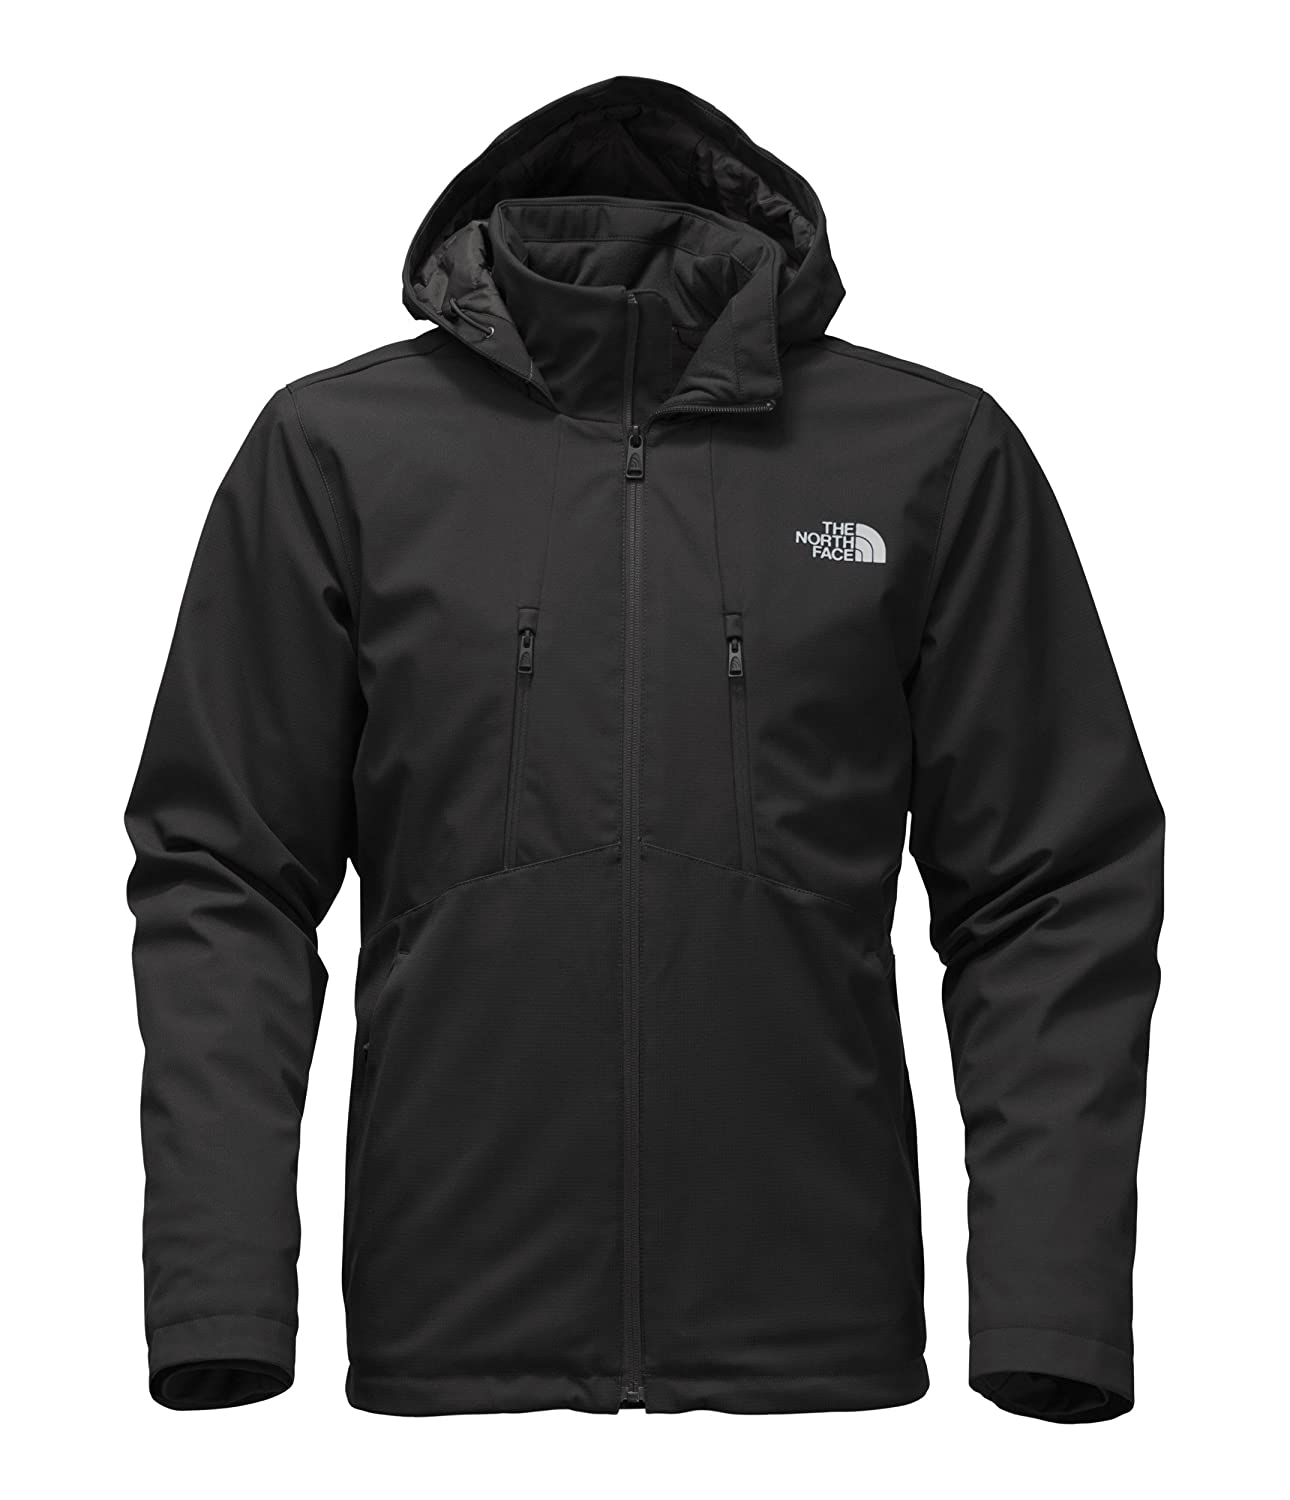 031e8ab760ee The North Face Mens Apex Elevation Jacket at Amazon Men s Clothing store